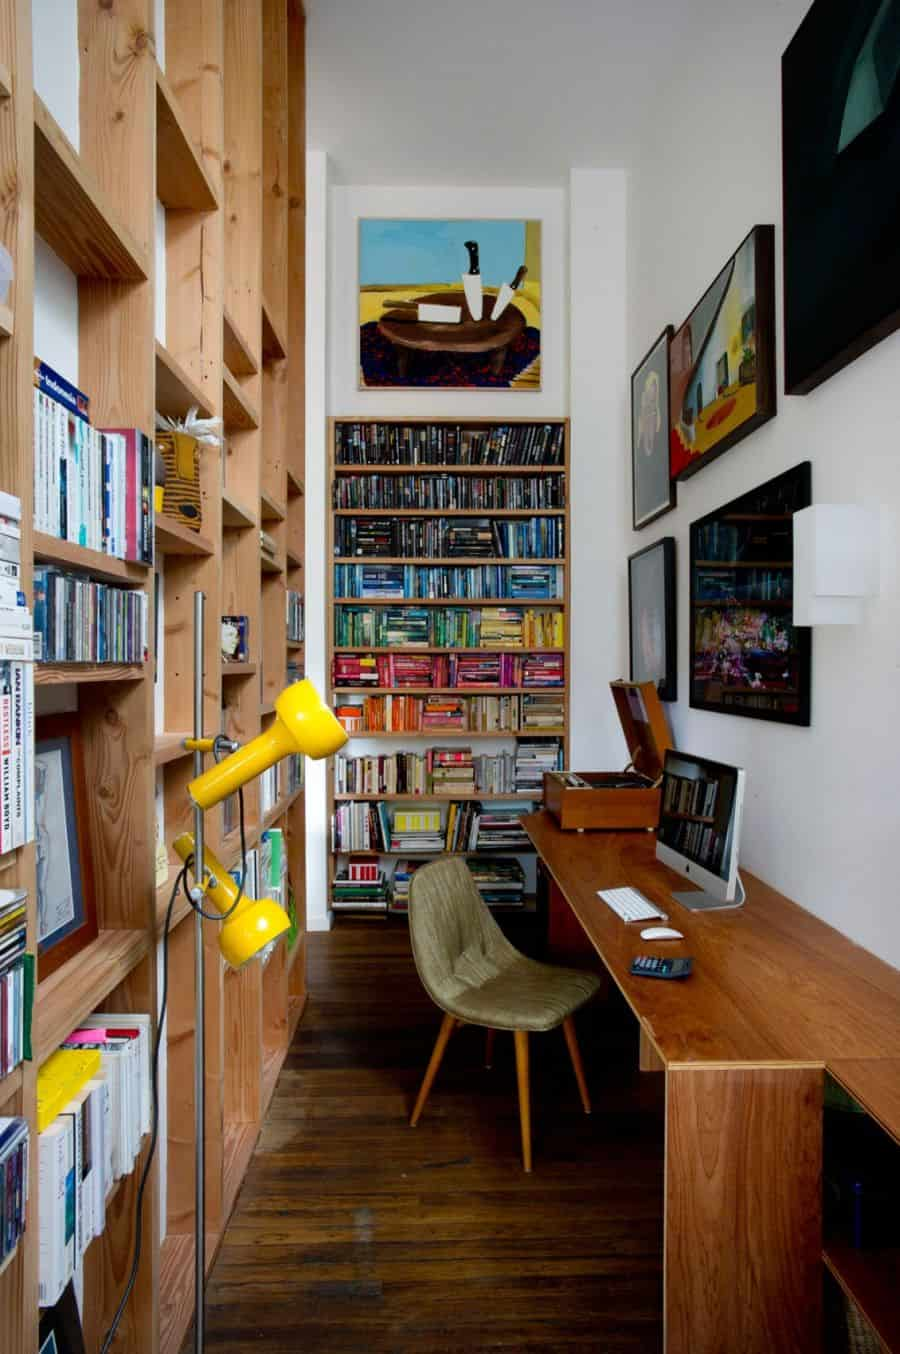 Eclectic Small House Plan Packs a Big Punch on creative office ideas, home office ideas for small spaces, home office bookcases, home office desk, rustic home office ideas, home office library, laundry design ideas, bathroom design ideas, home office workstation, sewing room design ideas, home office built in designs, foyer design ideas, home office pinterest, home office furniture, home office on a budget, home office organization ideas, basement design ideas, modern bathroom ideas, den design ideas, family room design ideas,